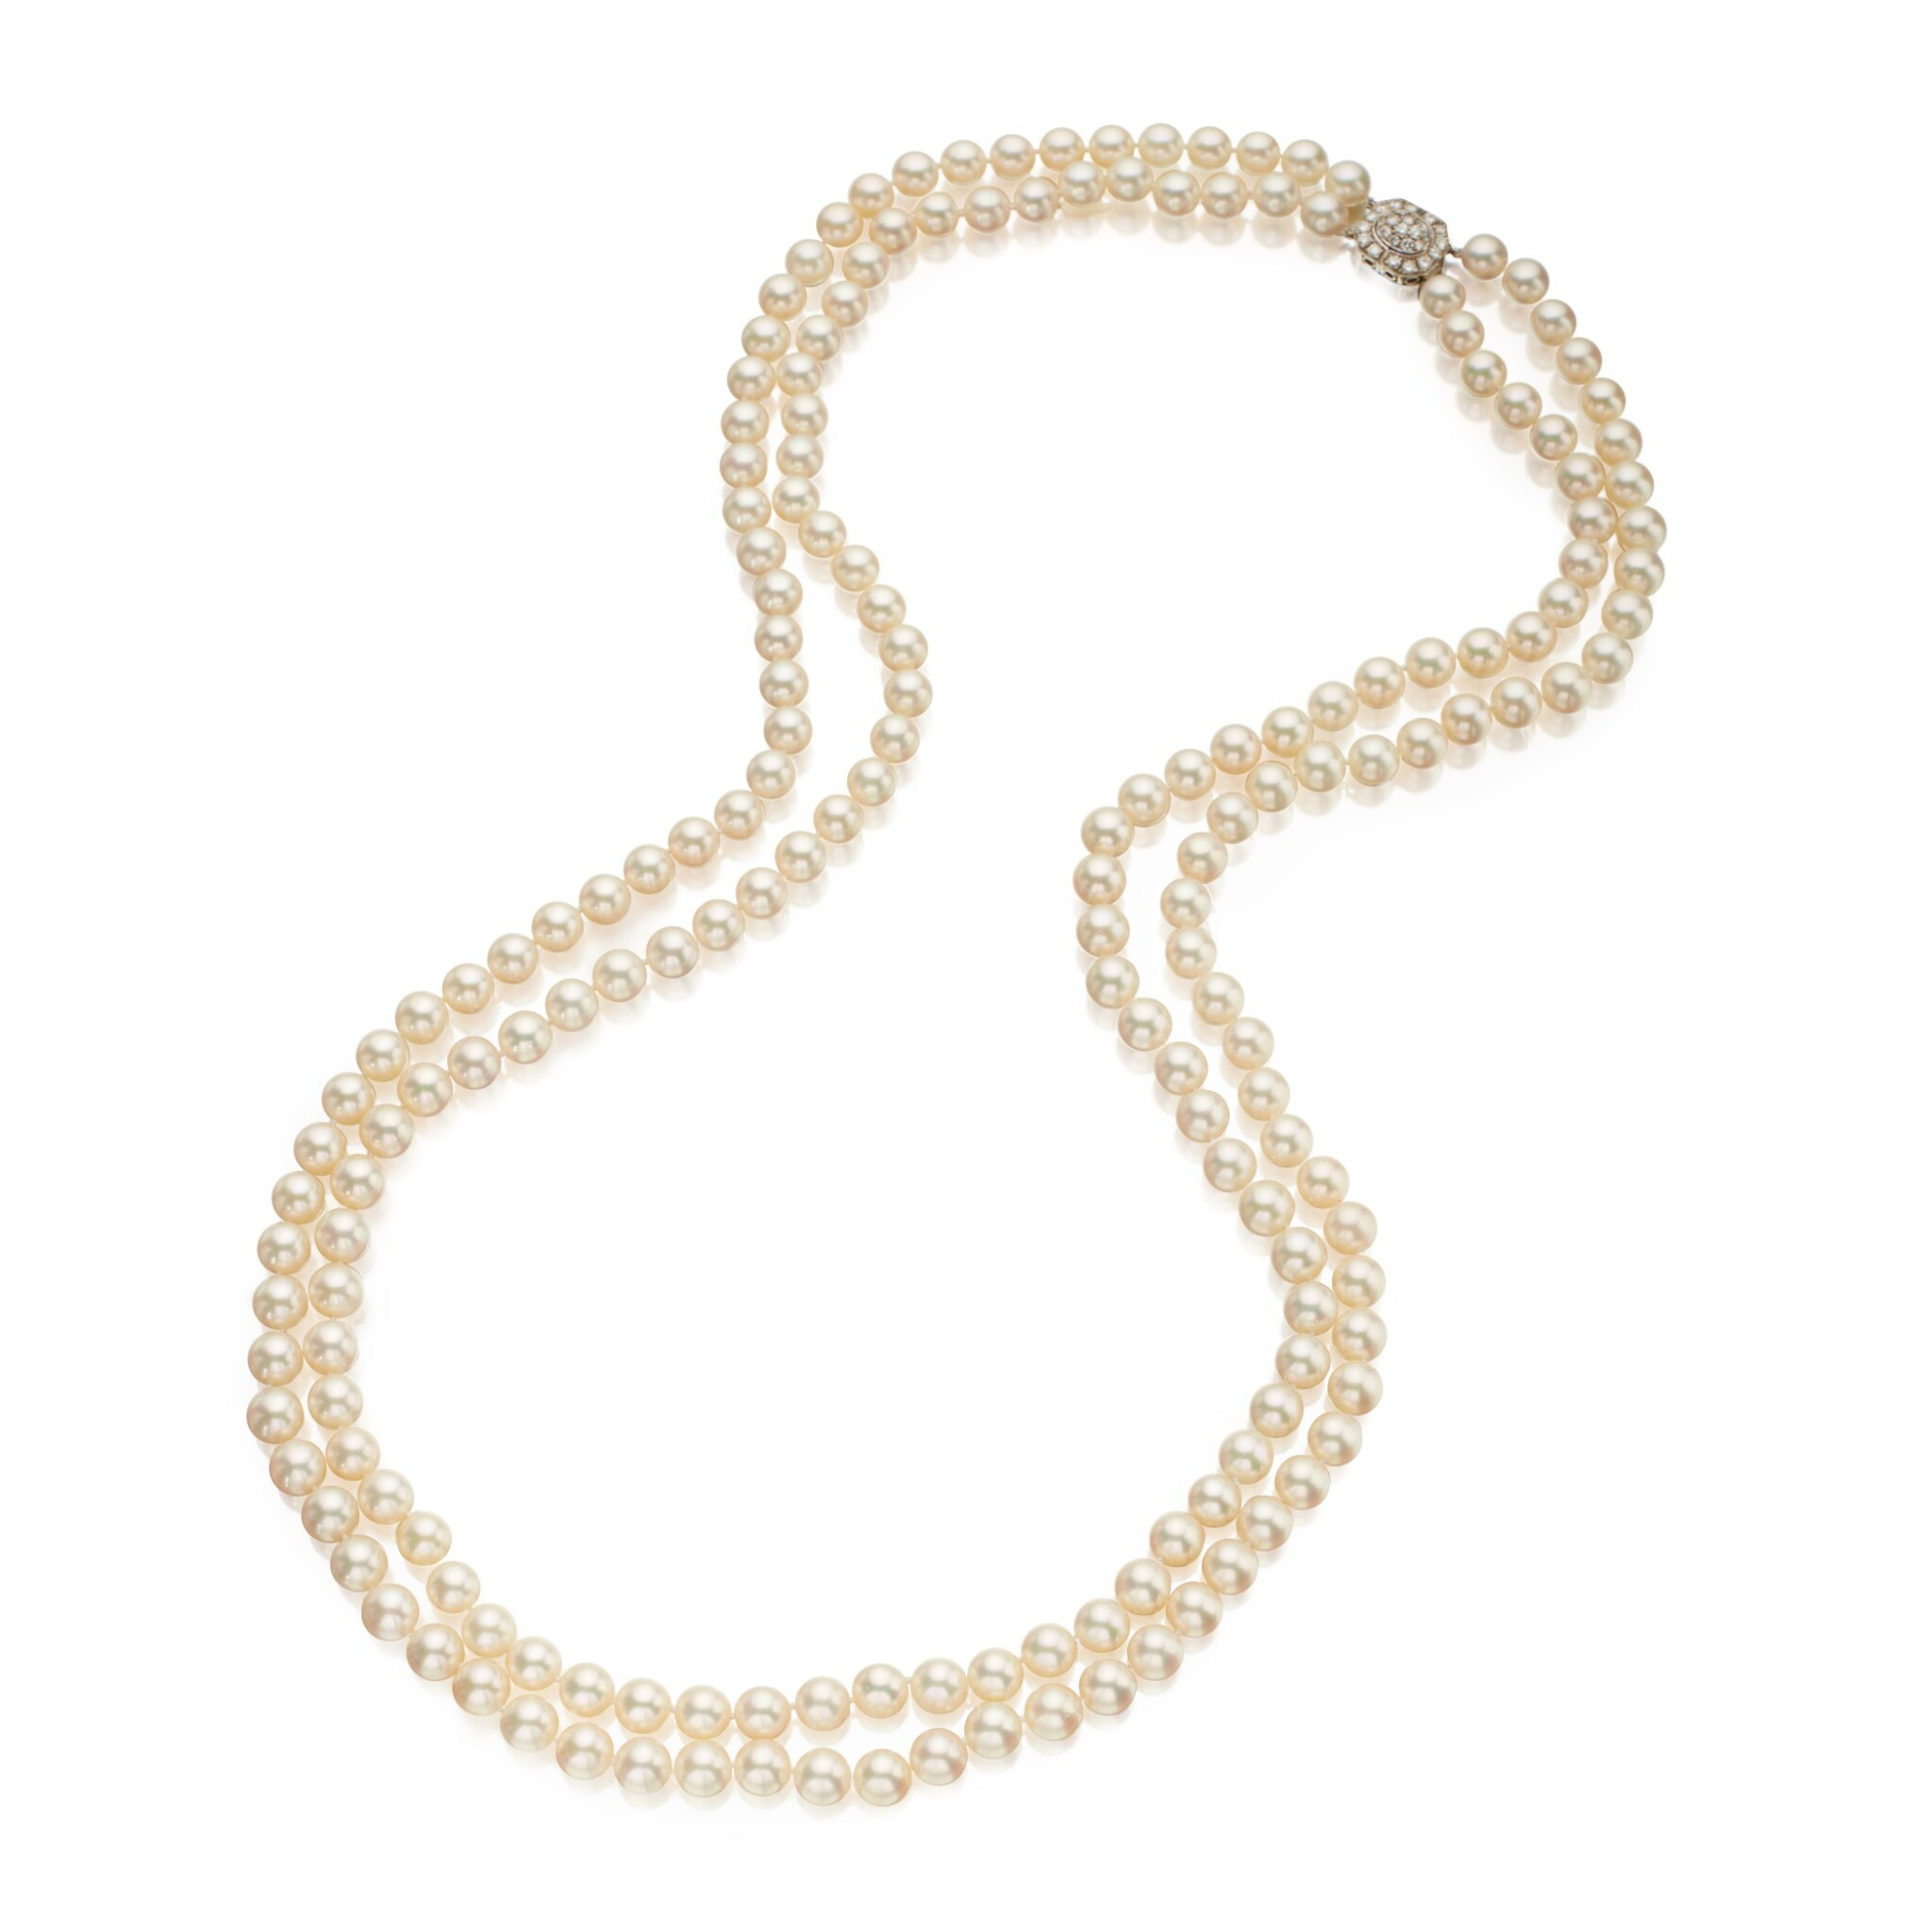 View 1 of Lot 328. Tiffany & Co. | Cultured Pearl and Diamond Necklace.